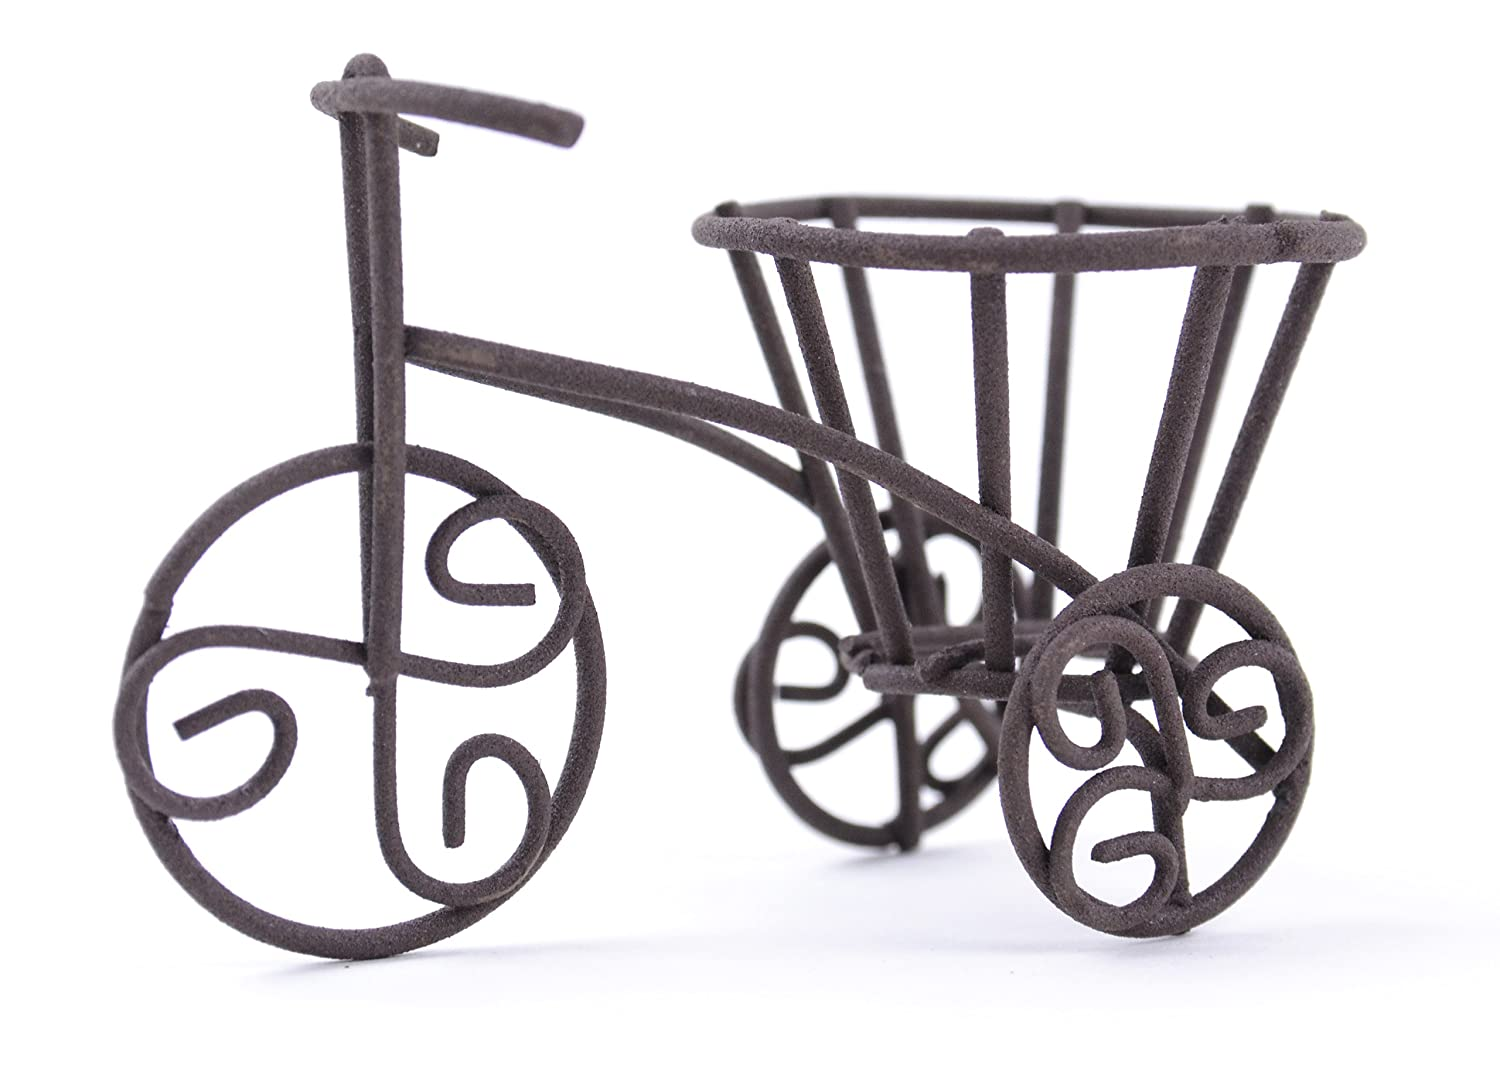 Touch of Nature 2.75 by 1.5 by 2-Inch Fairy Garden Bicycle Yard Art Mini Rustic